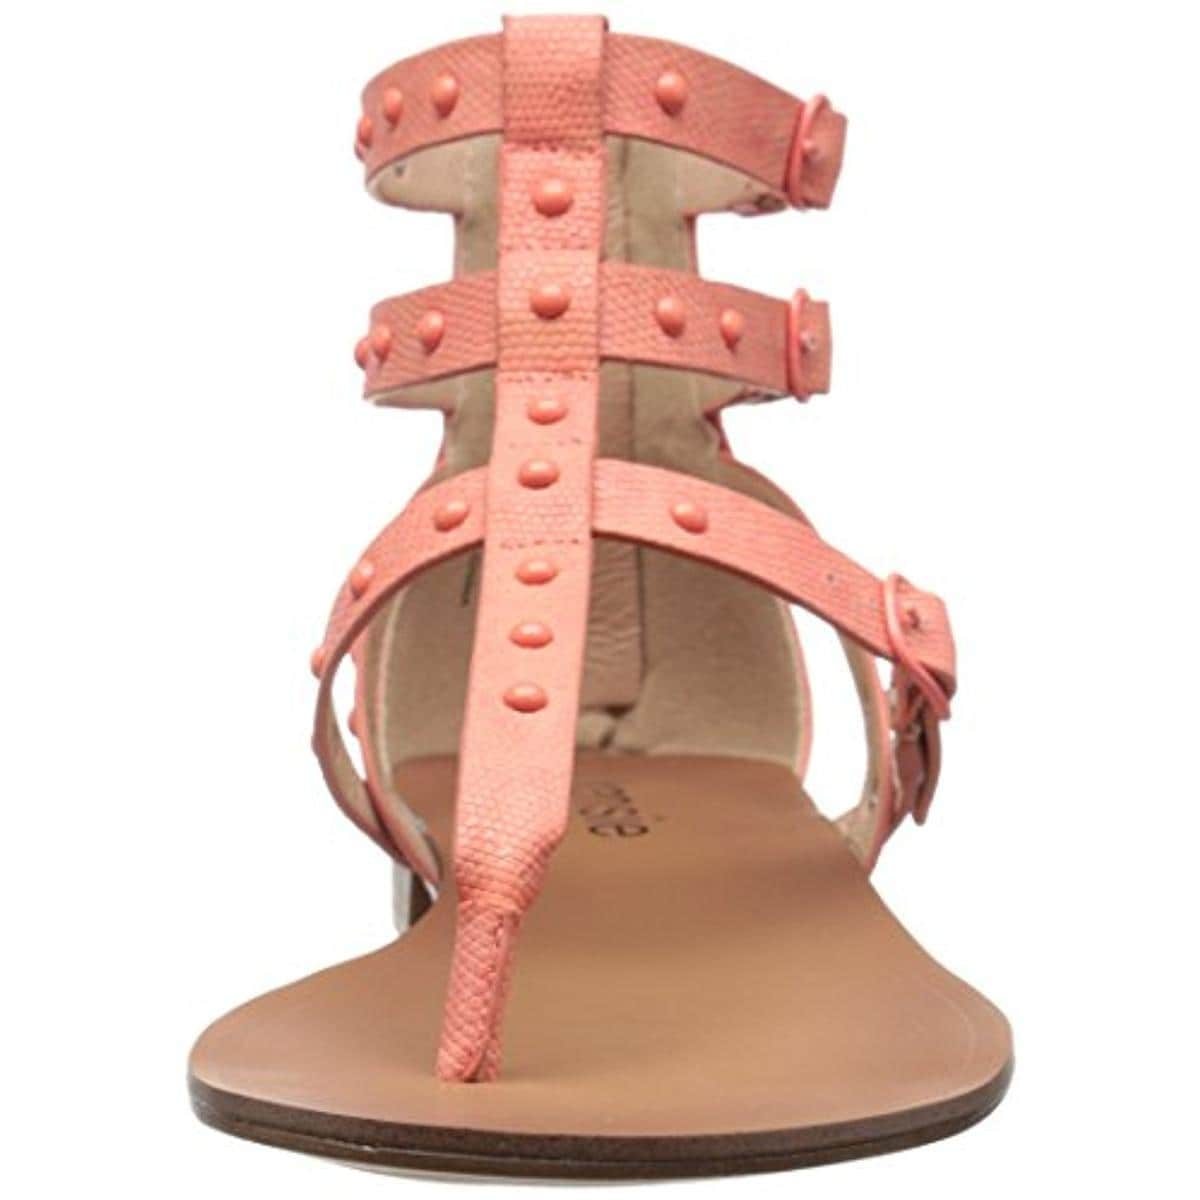 e3ce86f8bf0 Shop Kensie Womens Billie Gladiator Sandals Faux Leather Studded - Free  Shipping On Orders Over  45 - Overstock - 13087336